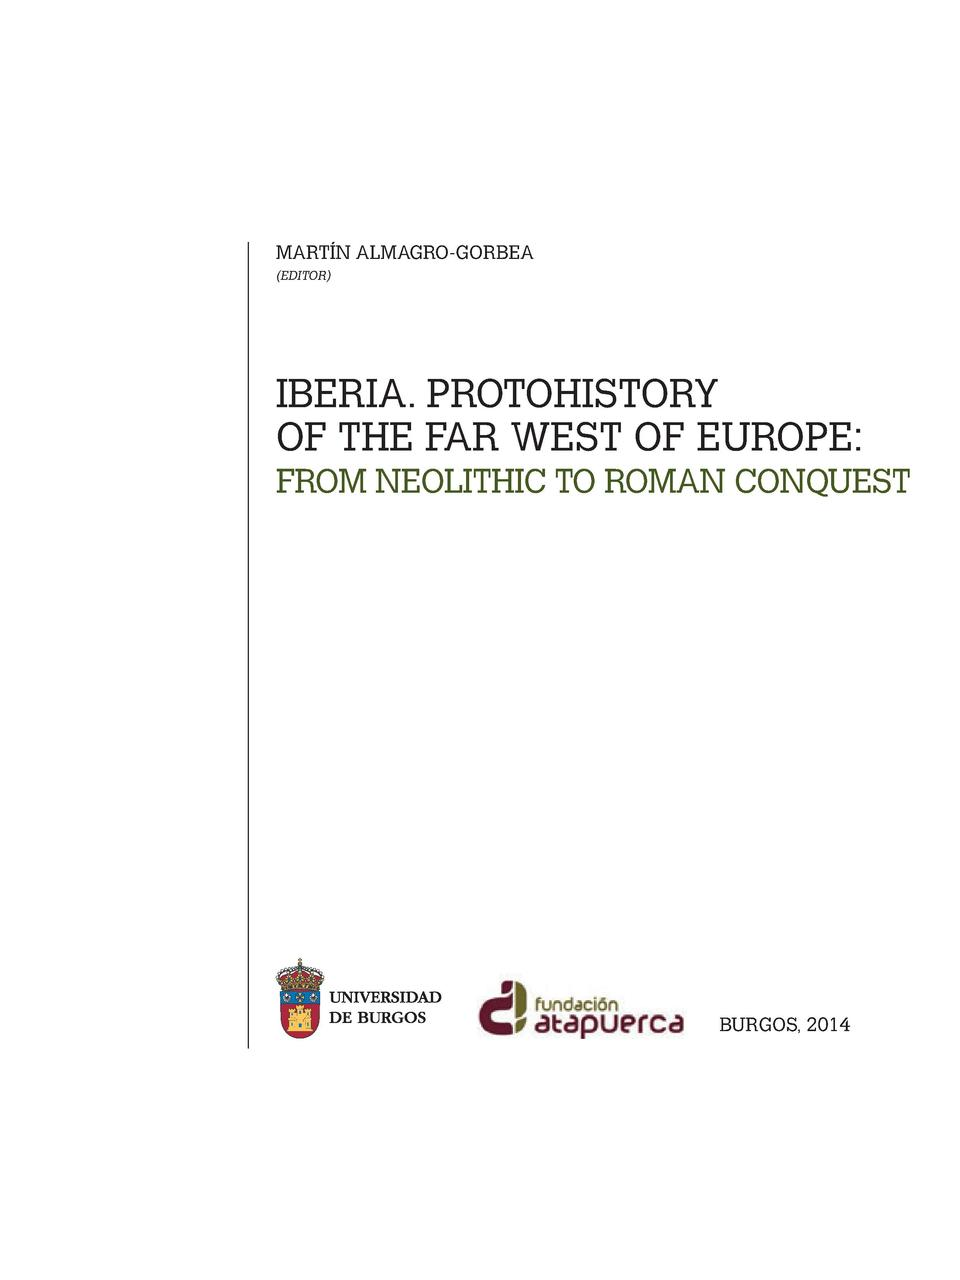 MART  N ALMAGRO-GORBEA  EDITOR   IBERIA. PROTOHISTORY OF THE FAR WEST OF EUROPE  FROM NEOLITHIC TO ROMAN CONQUEST  BURGOS,...